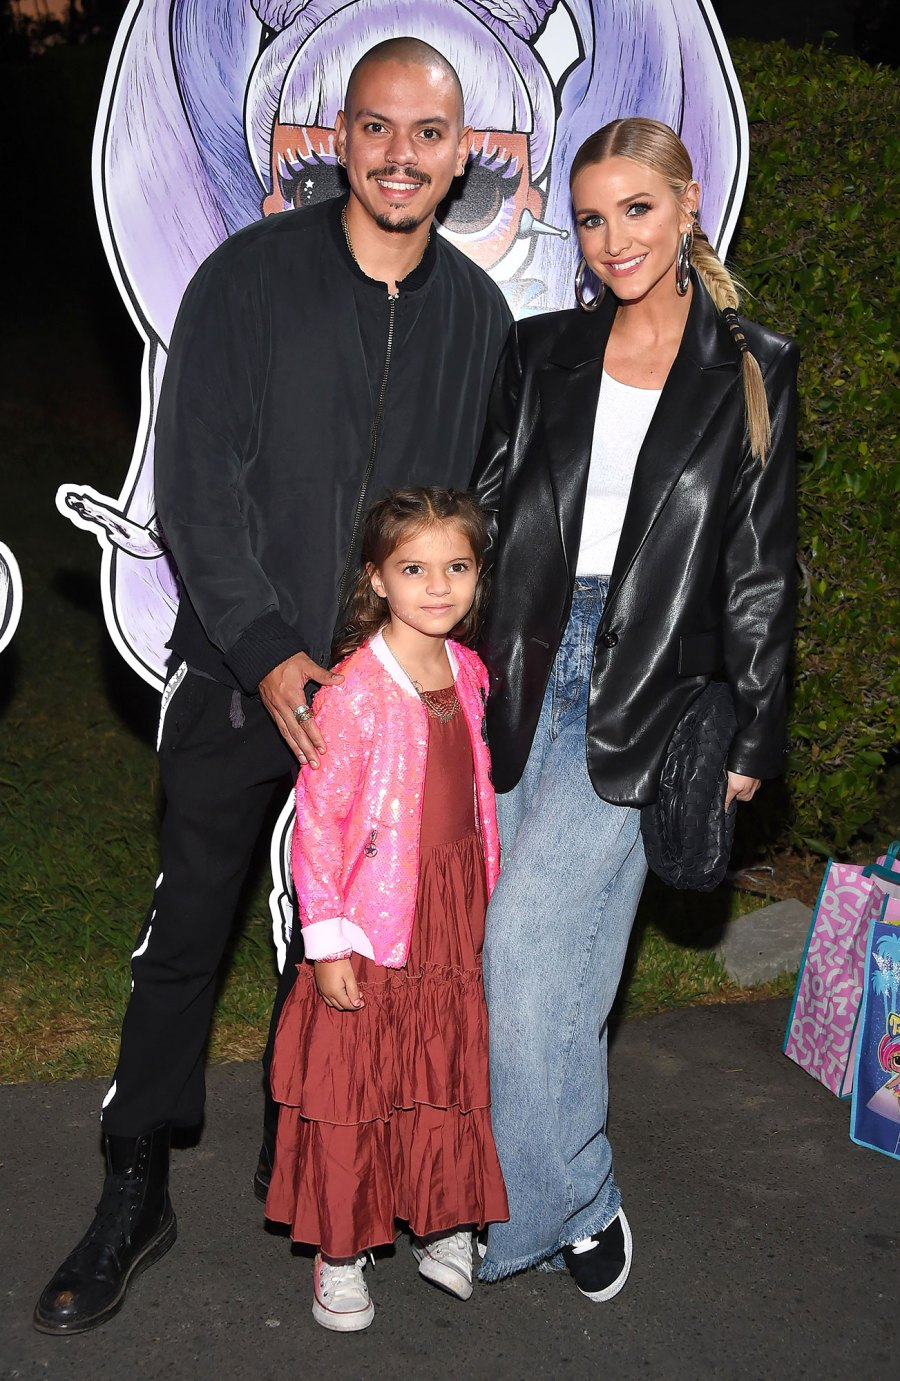 Ashlee Simpson and Evan Ross Bring Daughter Jagger to LOL Surprise Premiere 5